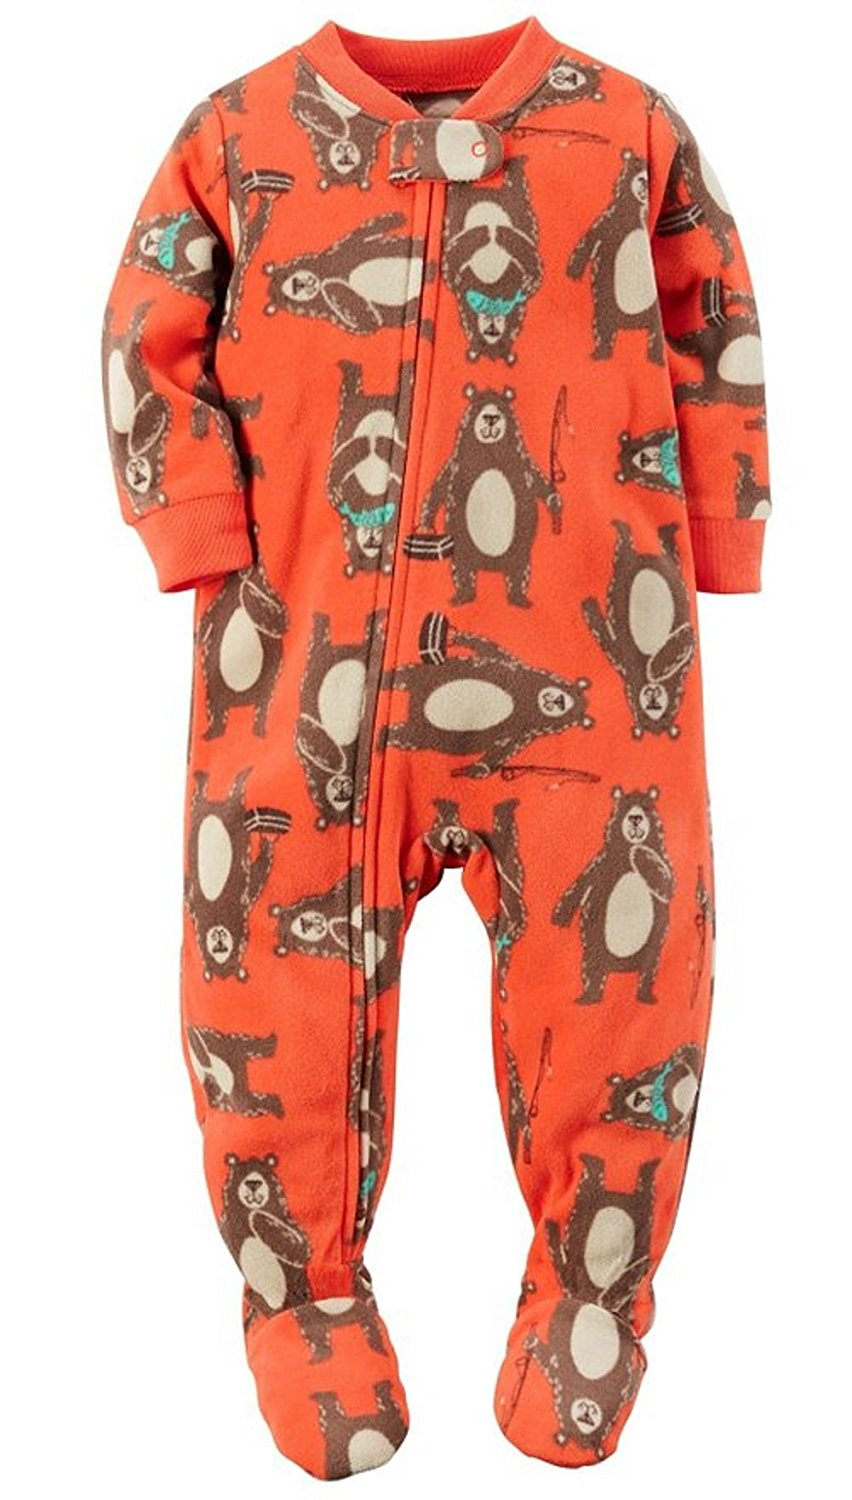 Men's Pajamas Sleepyheads Holiday Family Matching Polar Bear Pajama PJ Sets. $ - $ SleepytimePjs Family Matching Fleece Red Plaid Onesie Footed Pajamas. $ - $ Lazy One Family Matching Falling to Sleep Thermal Long Sleeve Pajamas. $ $